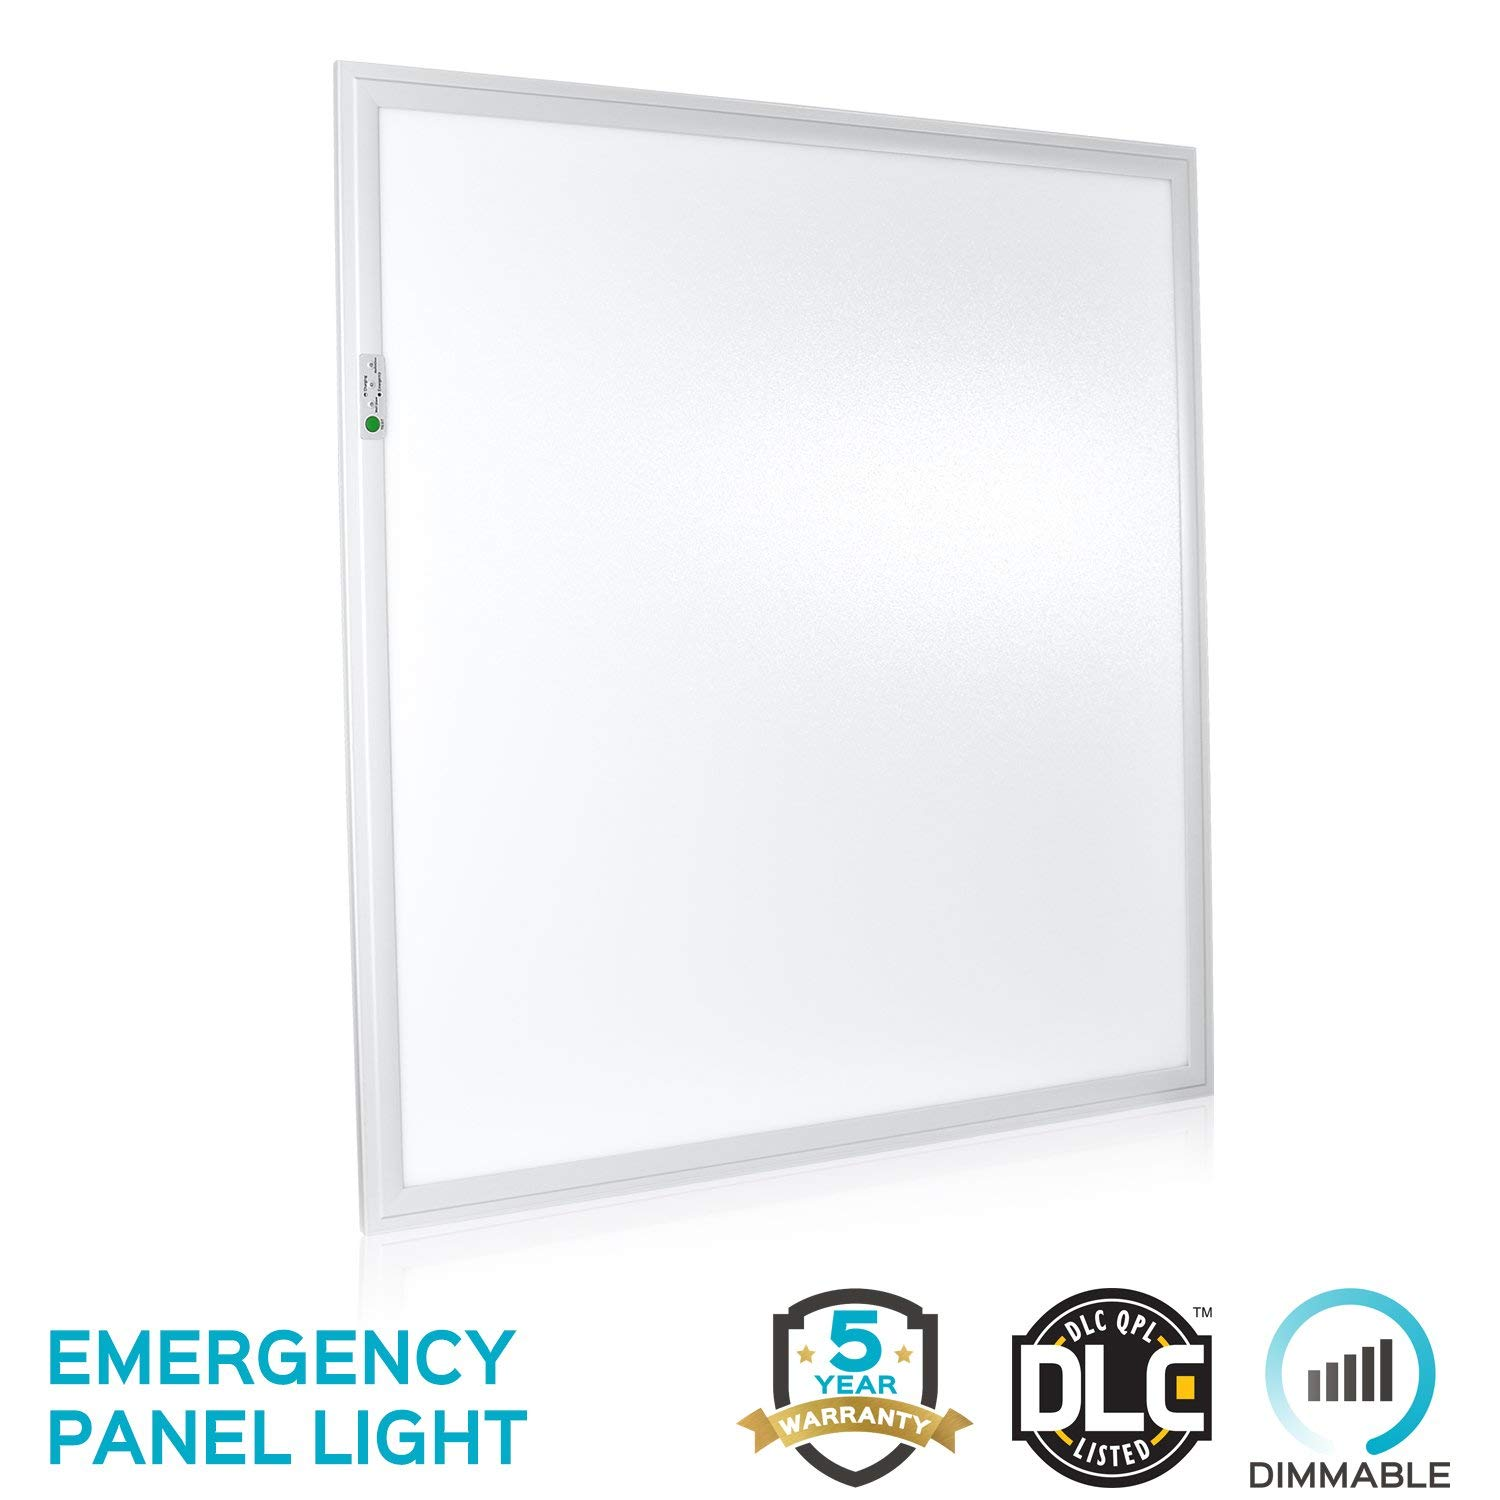 Luxrite 2x2 LED Panel Light with Emergency Battery Backup, 45W 4000K Cool White, 0-10V Dimmable, 4800 Lumens, Flat Panel LED Drop Ceiling Light, 100-277V, DLC and UL Listed, Ultra Thin Edge-Lit